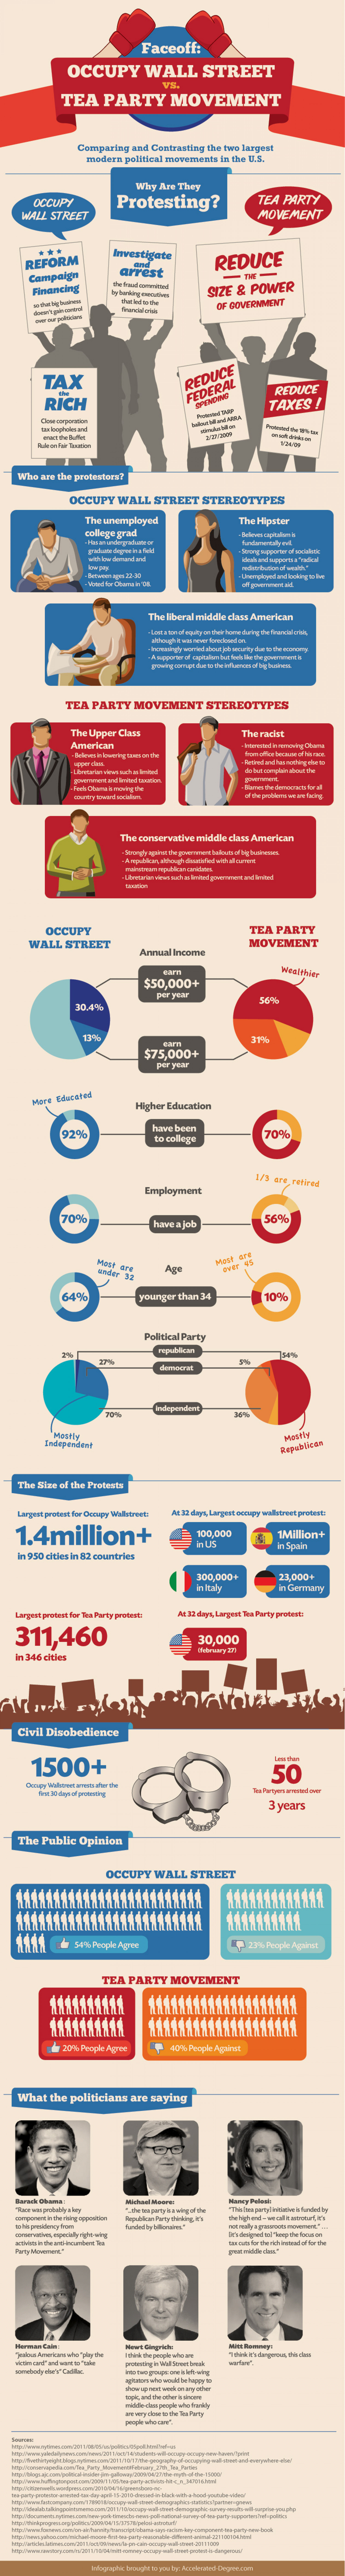 Occupy Wall Street vs. Tea Party Movement Infographic